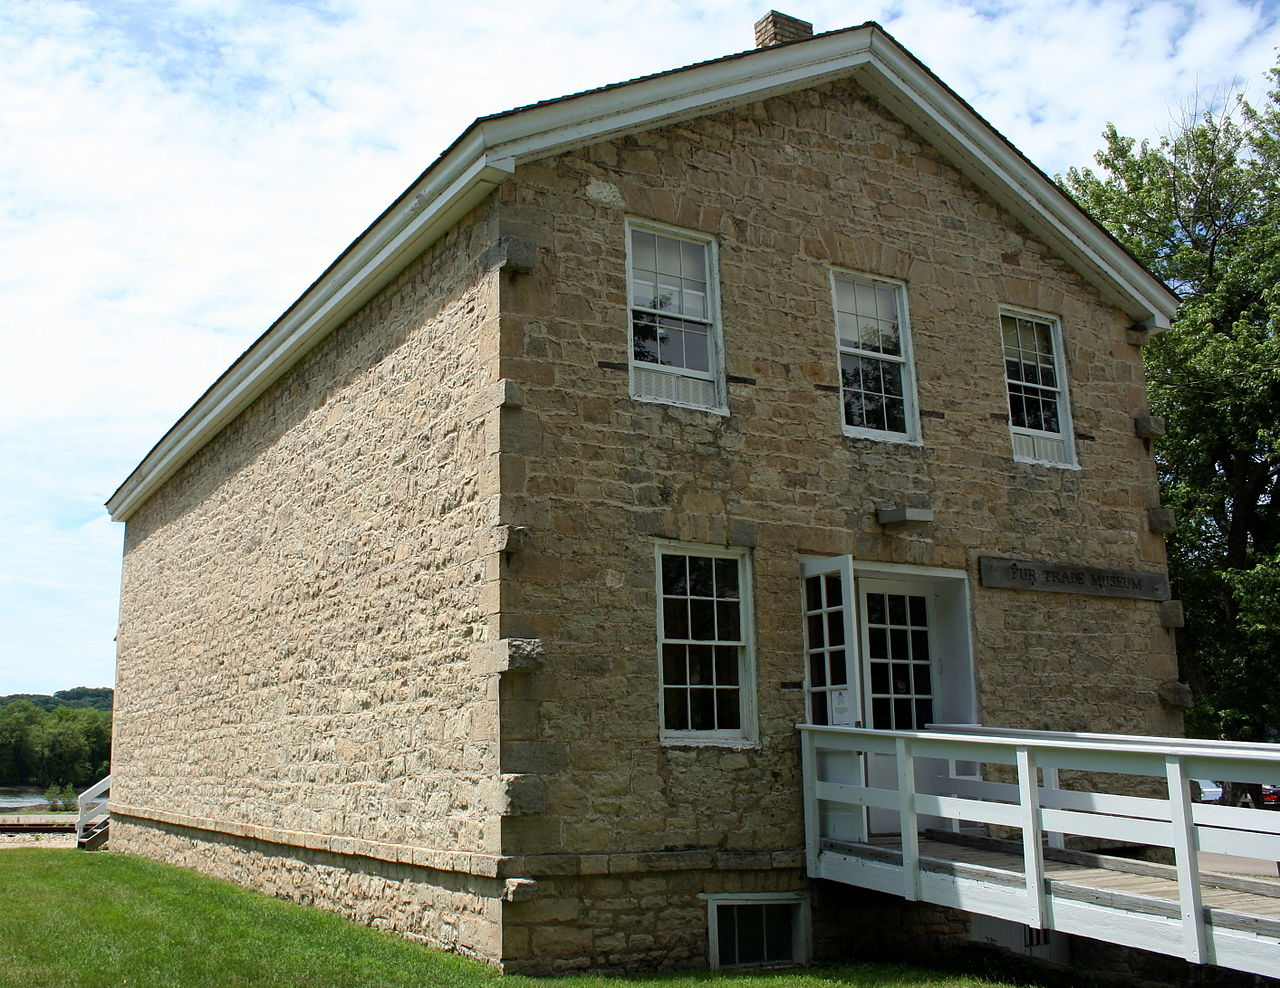 The Astor Fur Warehouse, now the Fur Trading Museum